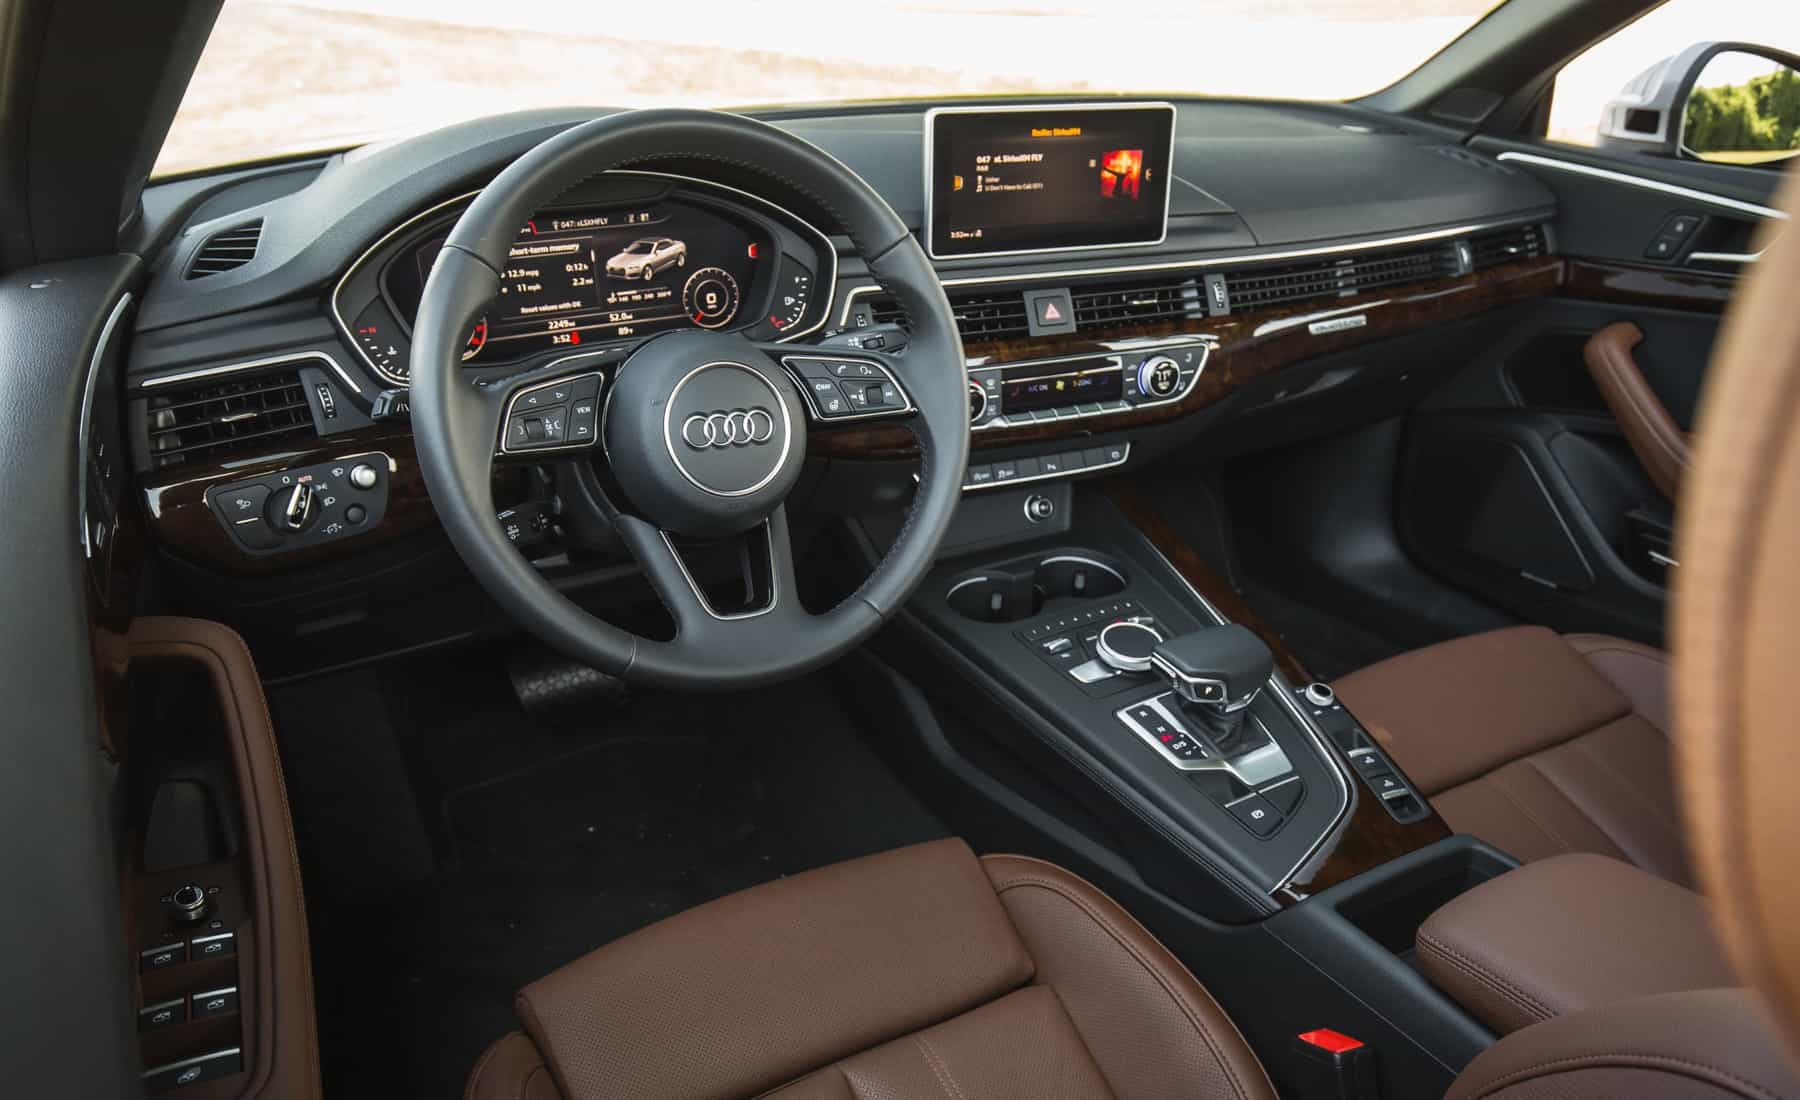 2018 Audi A5 Cabriolet Interior Driver Cockpit And Dashboard (Photo 25 of 45)